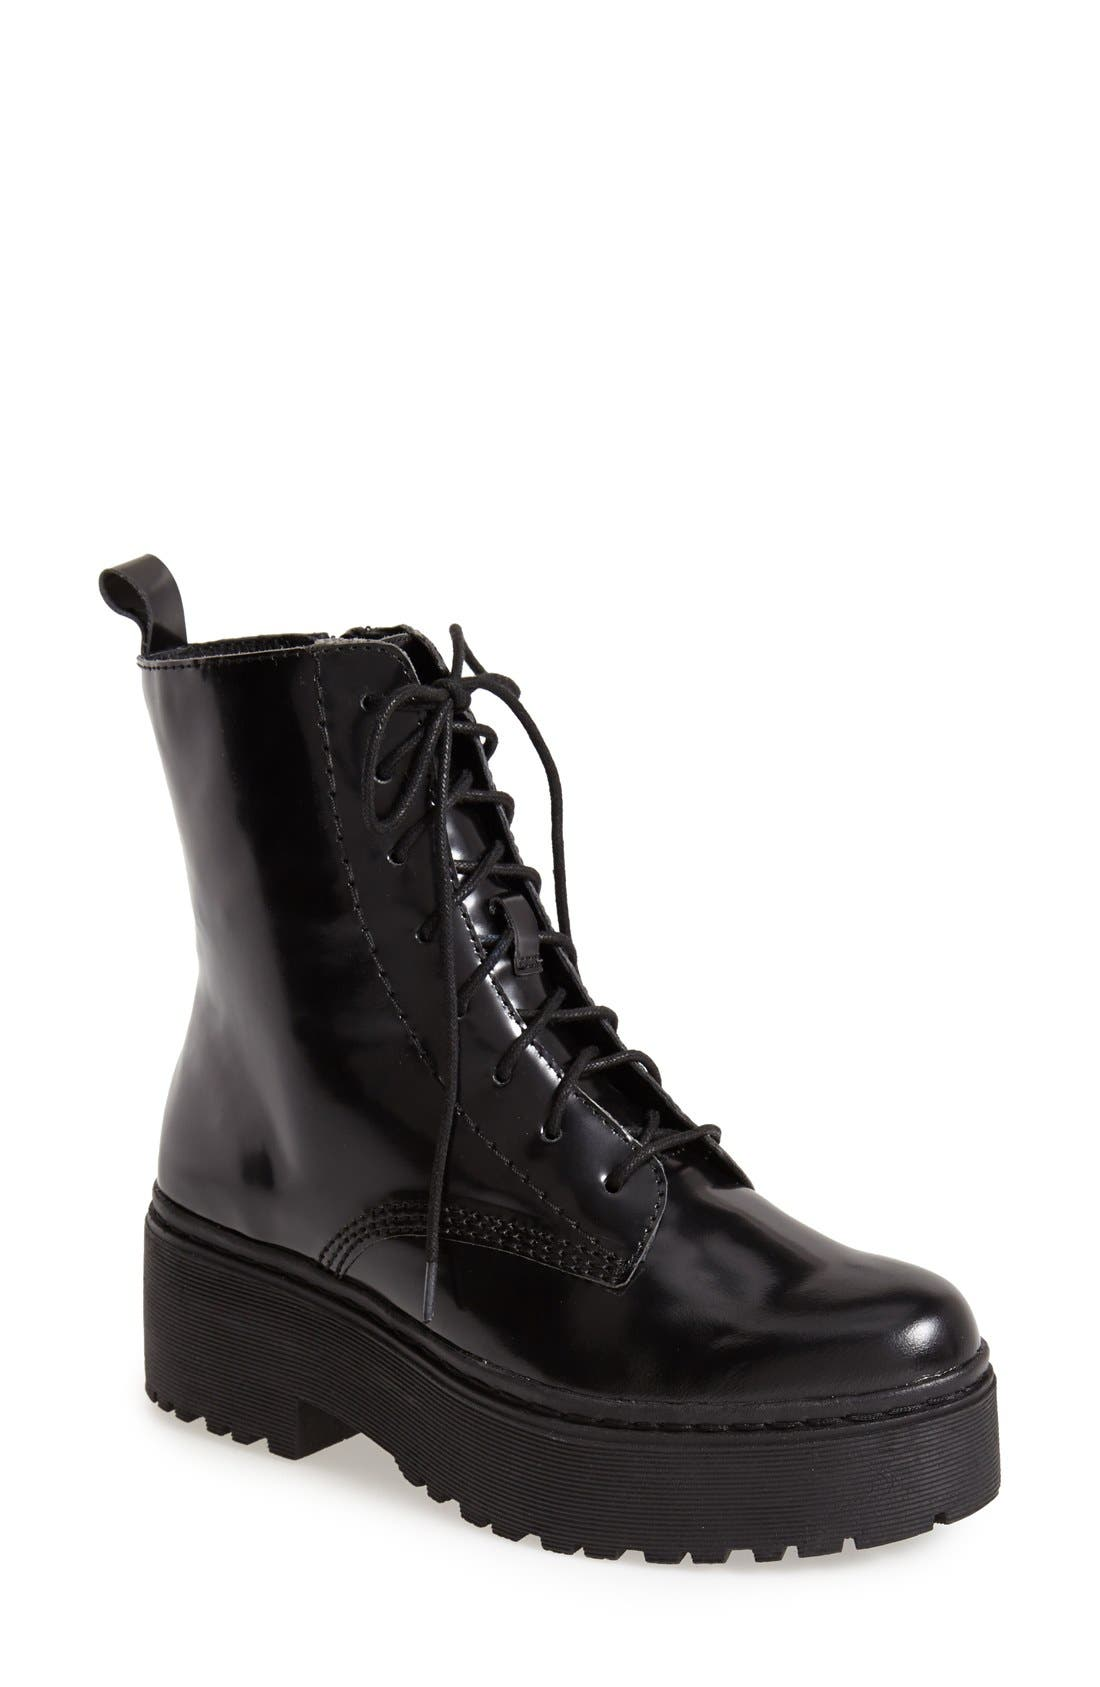 Alternate Image 1 Selected - Jeffrey Campbell 'Finnick' Boot (Women)